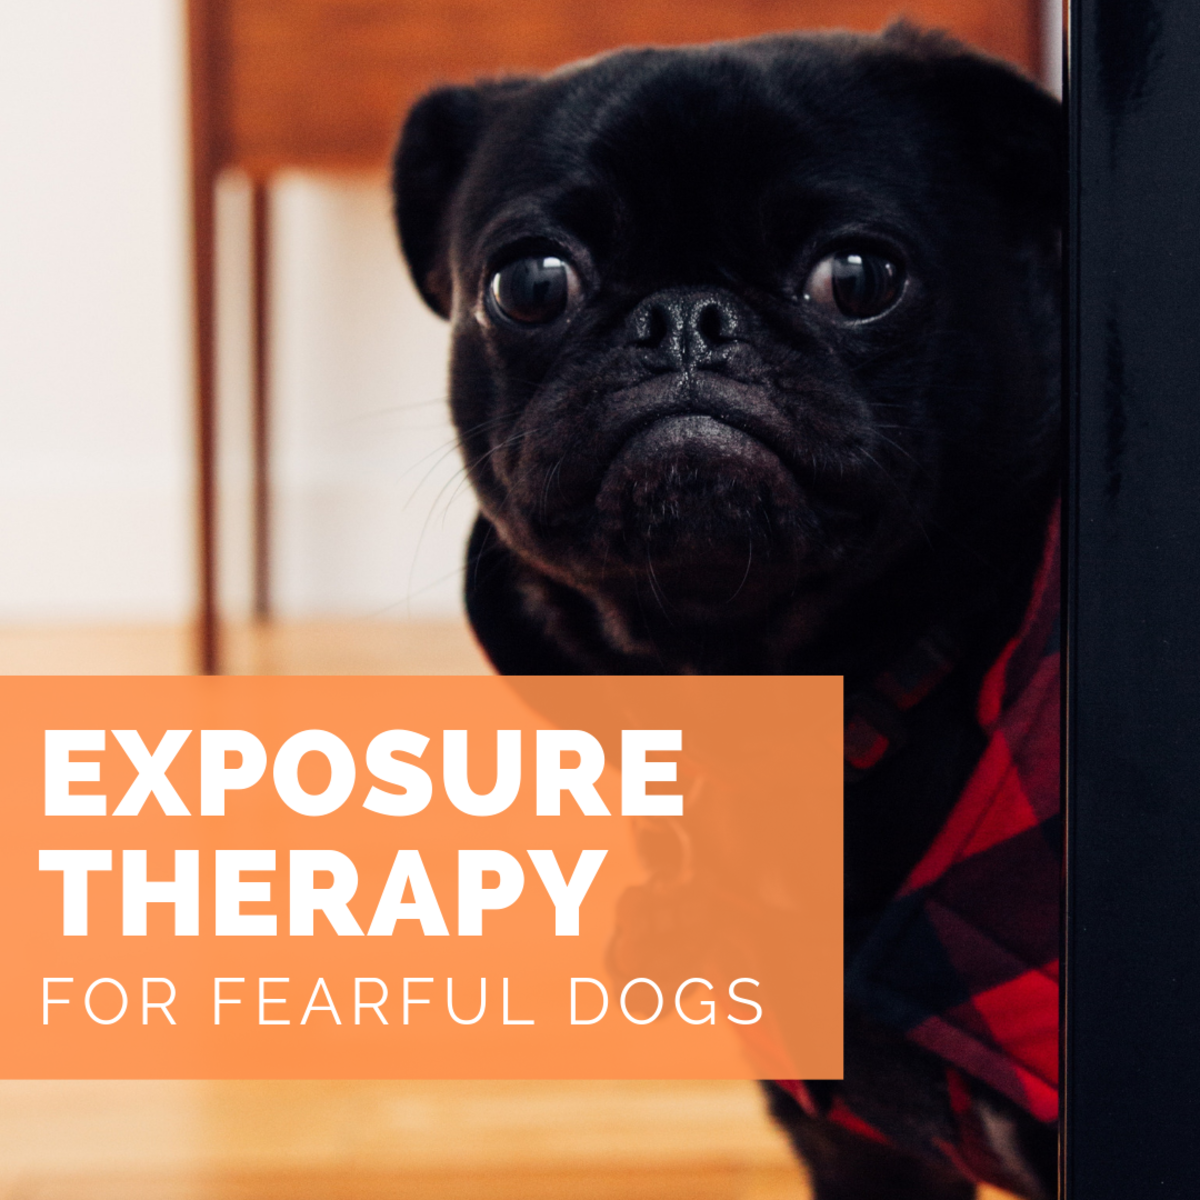 Exposure Therapy for Fearful Dogs